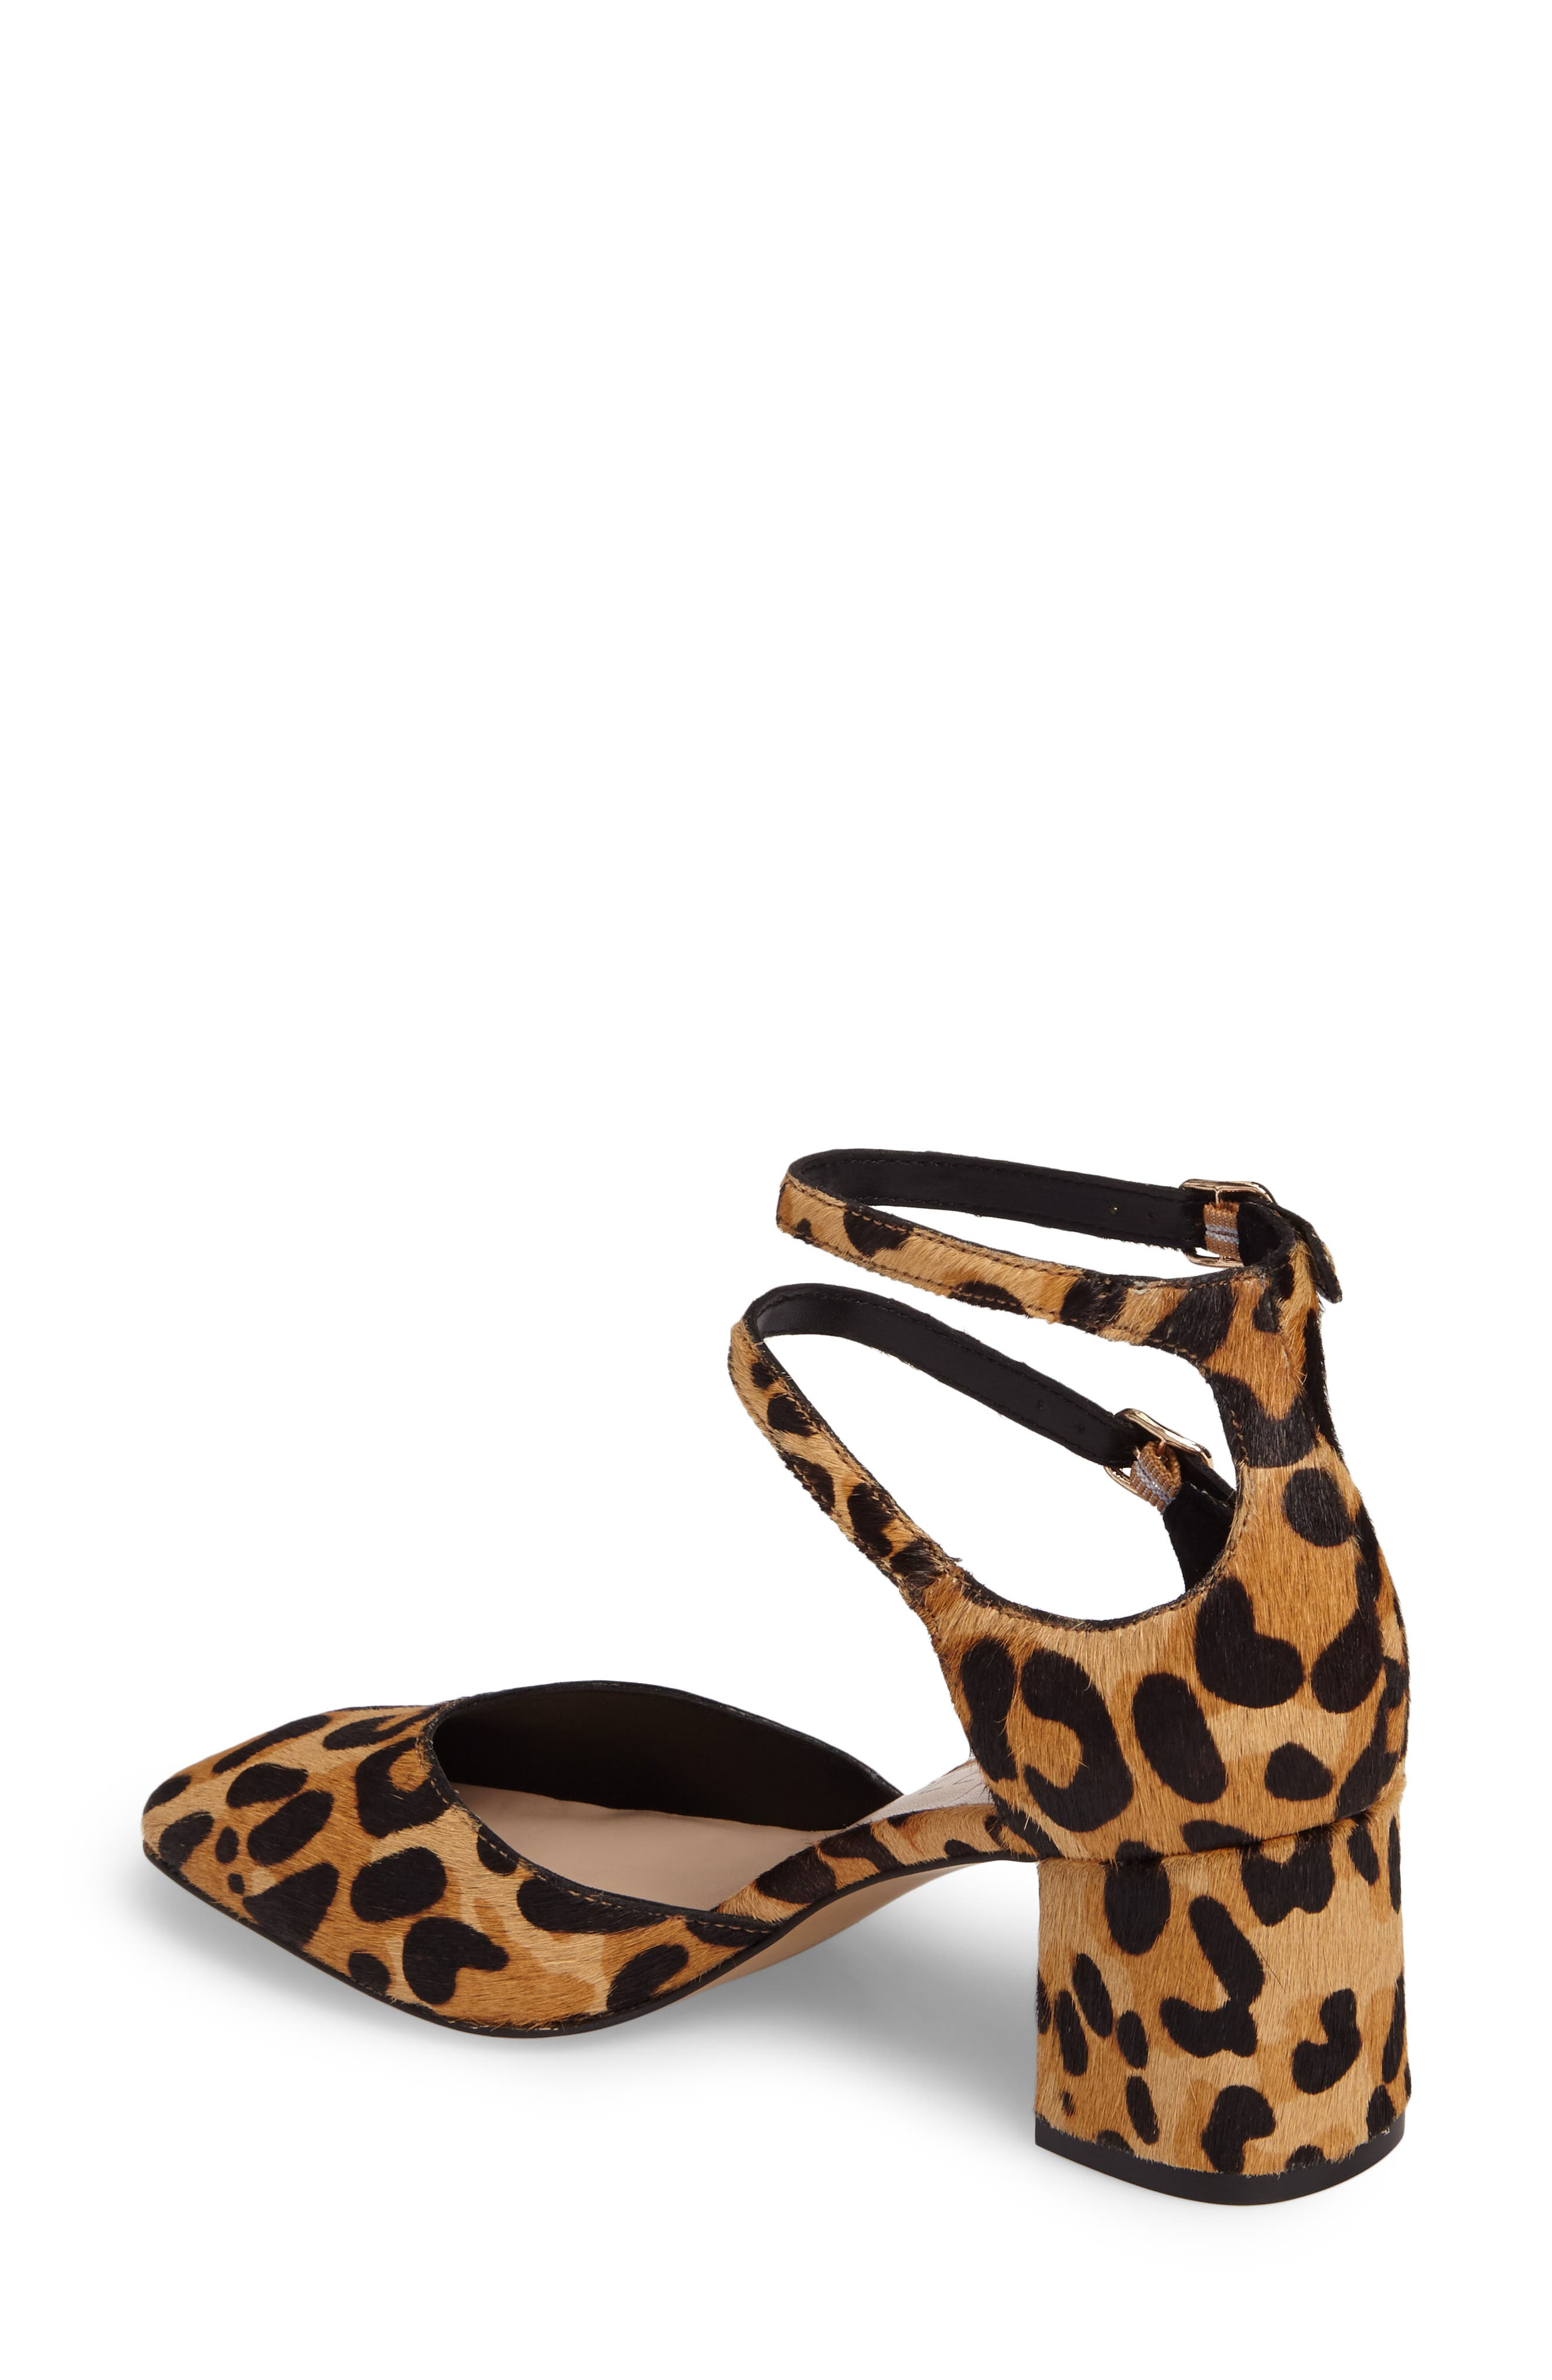 Selby Double Strap Pump,                             Alternate thumbnail 2, color,                             Leopard Haircalf